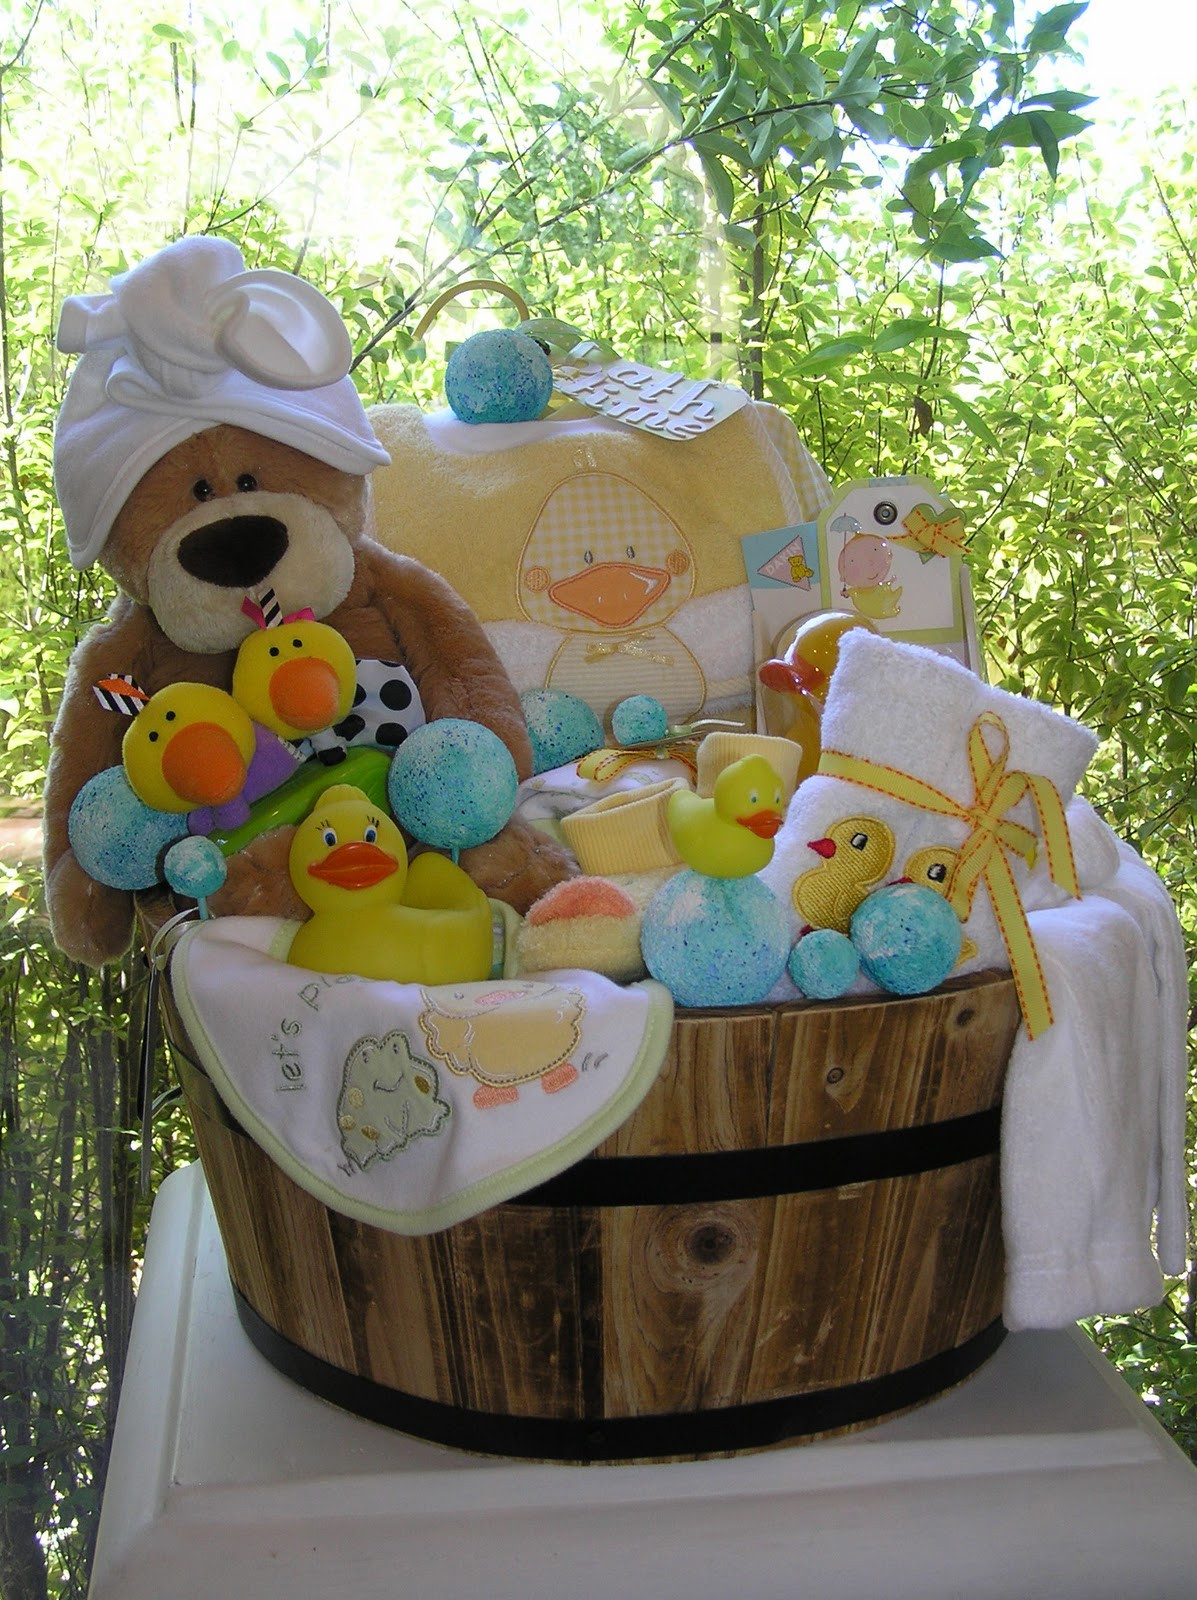 Baby Photo Gift Ideas  White Horse Relics Unique Themed Baby Gift Baskets